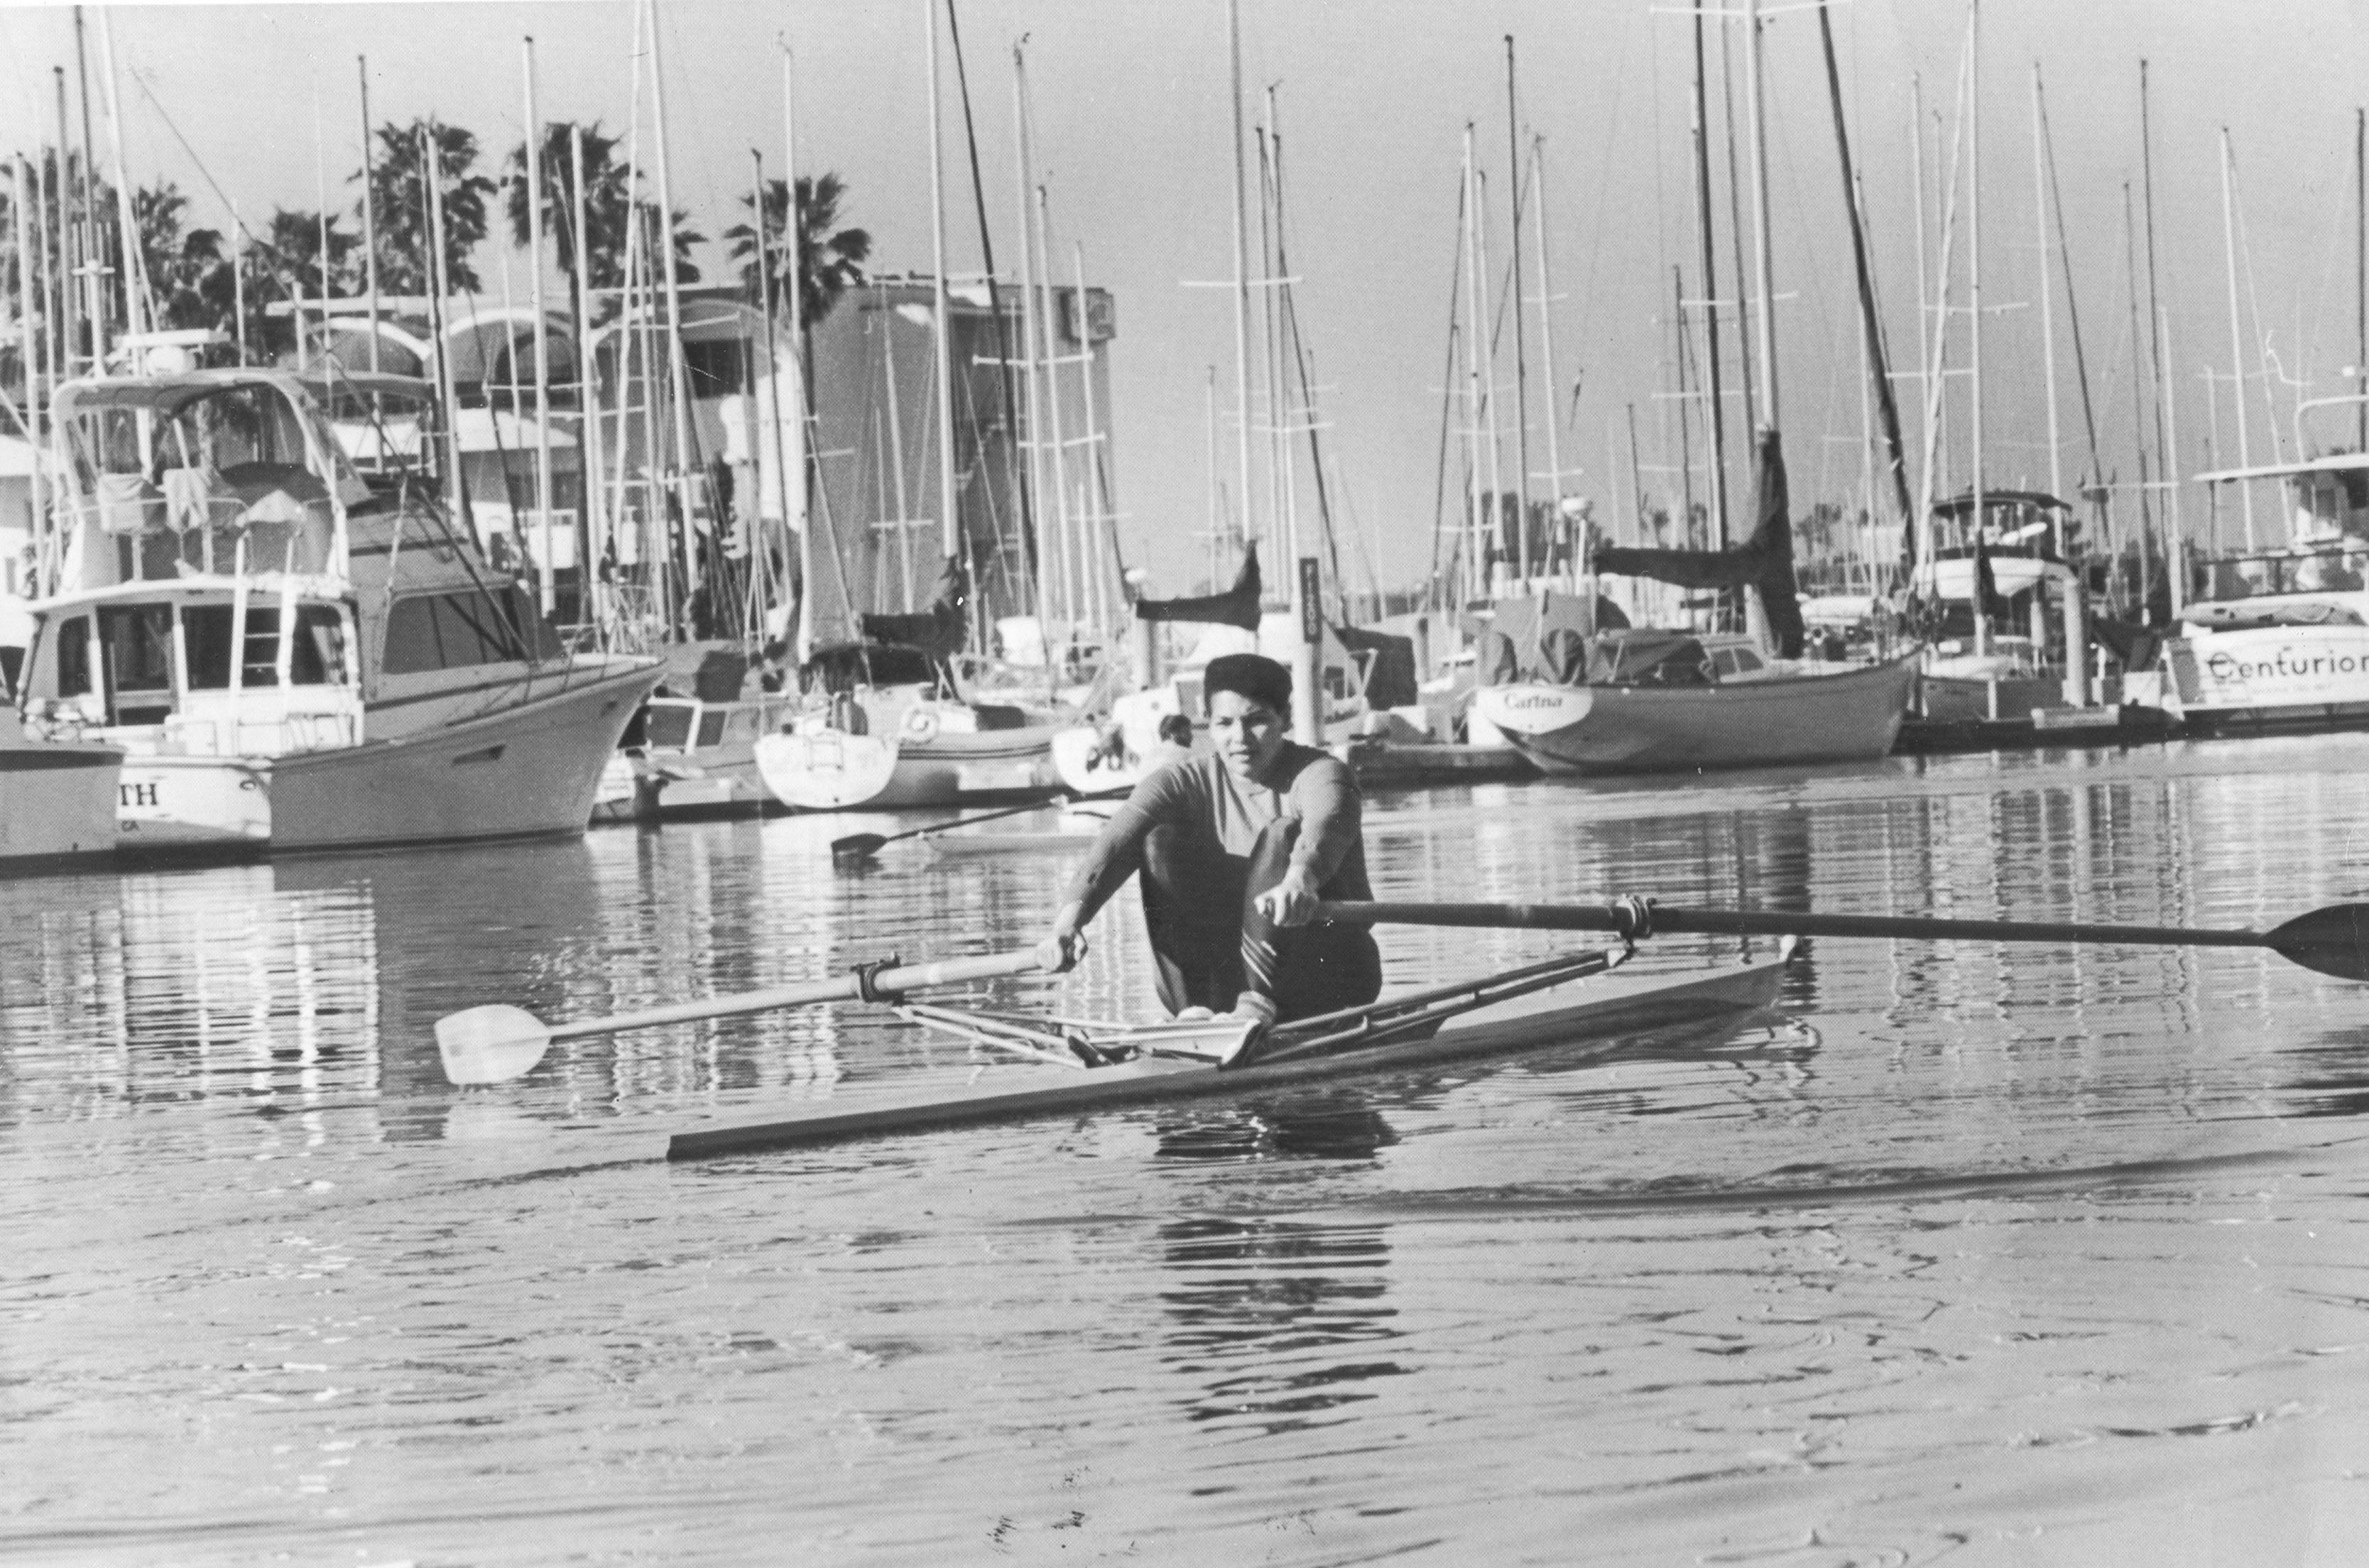 Anitz DeFrantz '74, seen here during her time at Connecticut College, won a bronze medal in women's rowing at the 1976 Summer Olympic Games in Montreal.